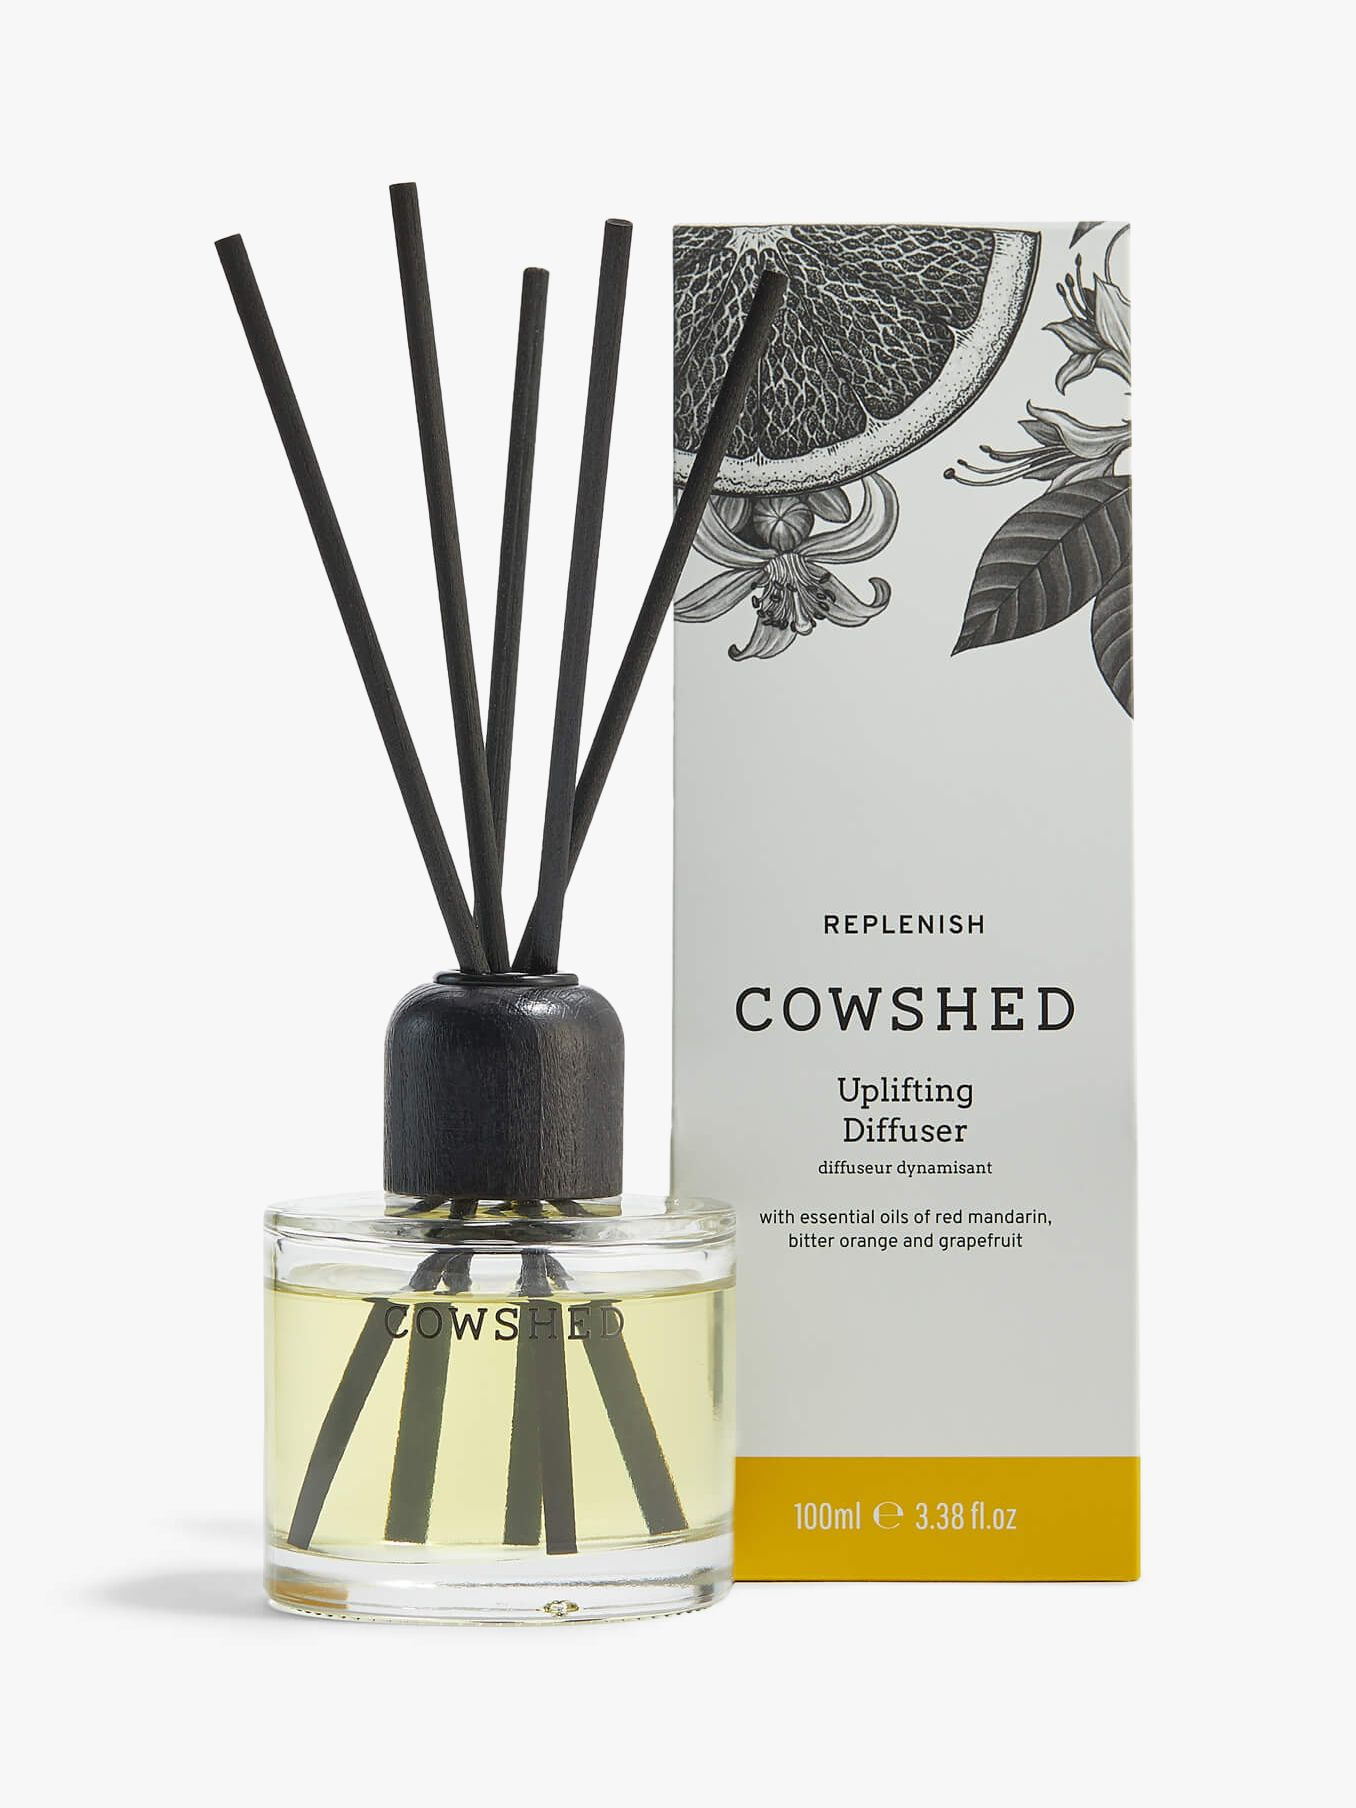 Cowshed Cowshed Replenish Uplifting Diffuser, 100ml